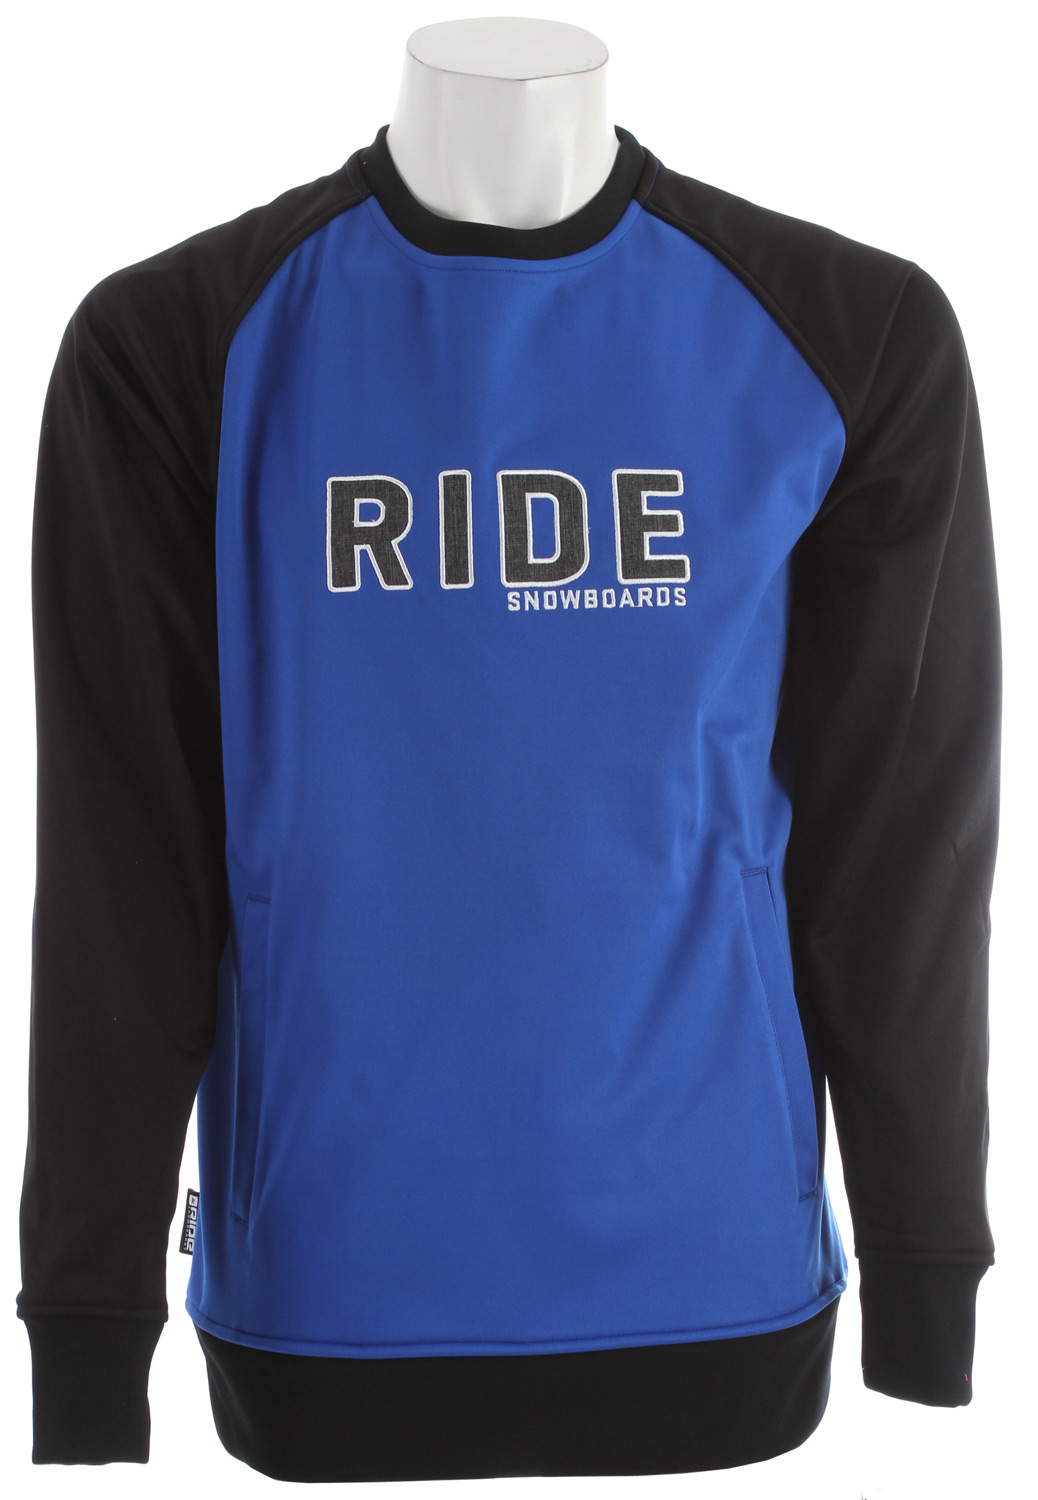 The new Westwood bonded fleece crewneck offers a 3K waterproof rating with side welt pockets and thumb holes to keep you comfy.Key Features of the Ride Westwood Sweatshirt: Side Welt Pockets Thumb Holes at Cuffs Tailored Fit - $32.89